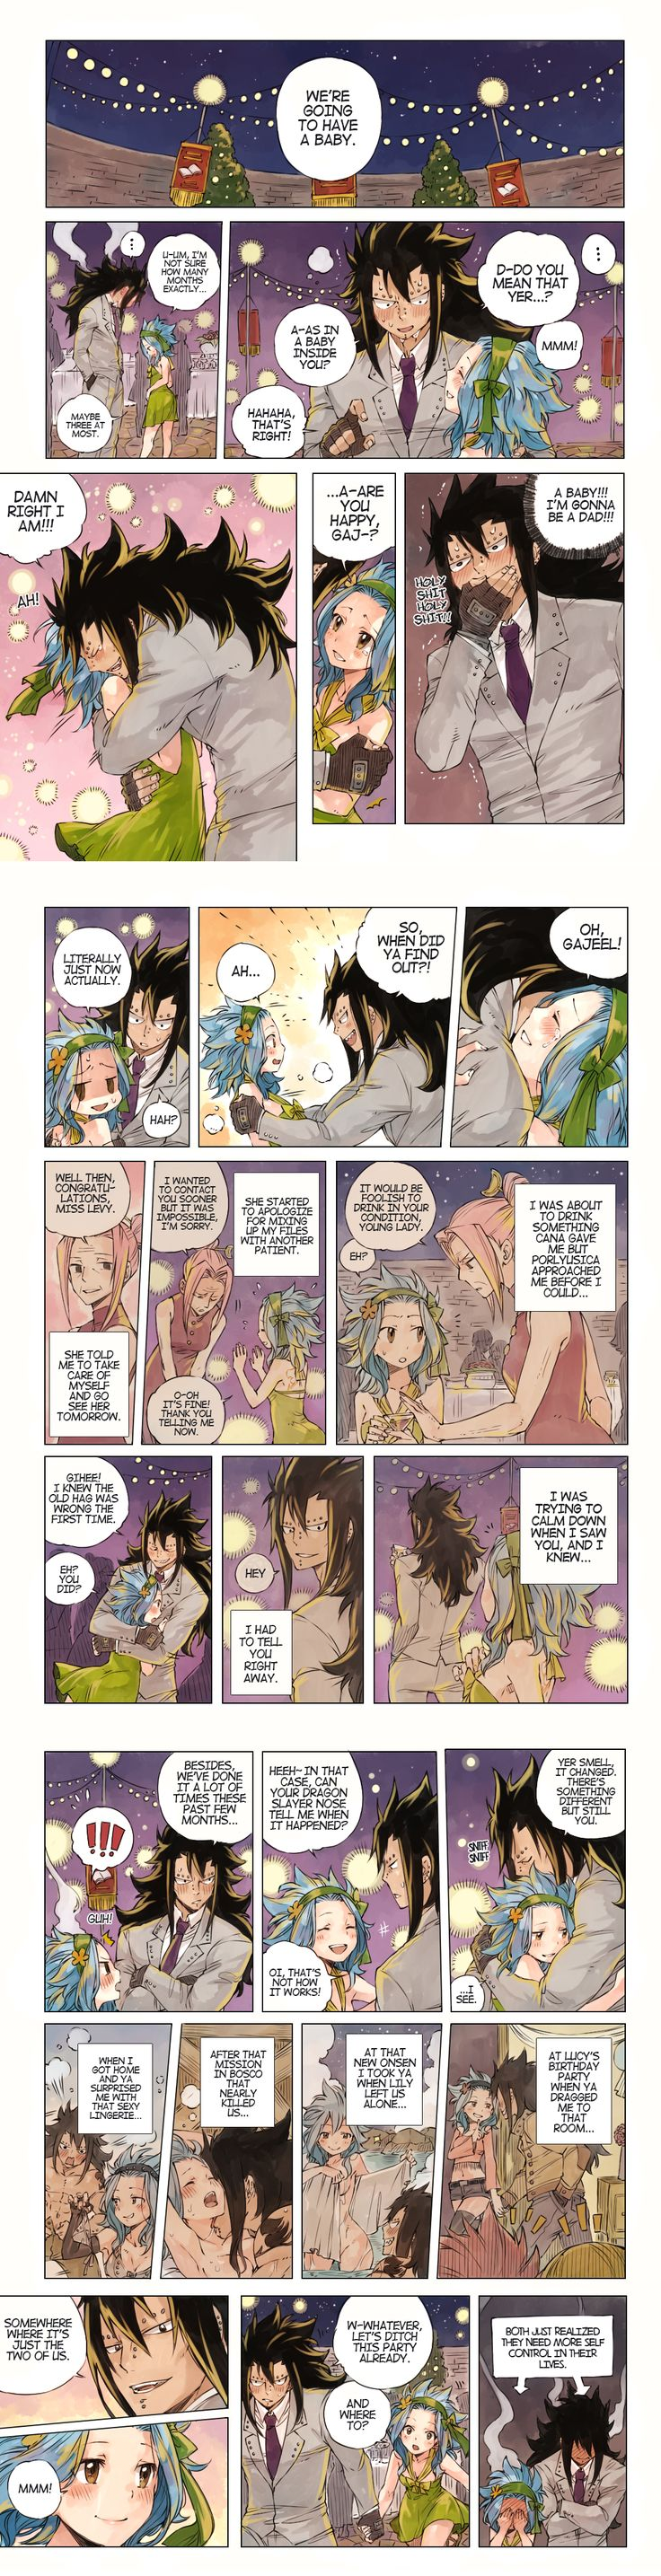 Fairy Tail fan art by rboz | Gajevy; Our Future - ch. 545 bonus 1